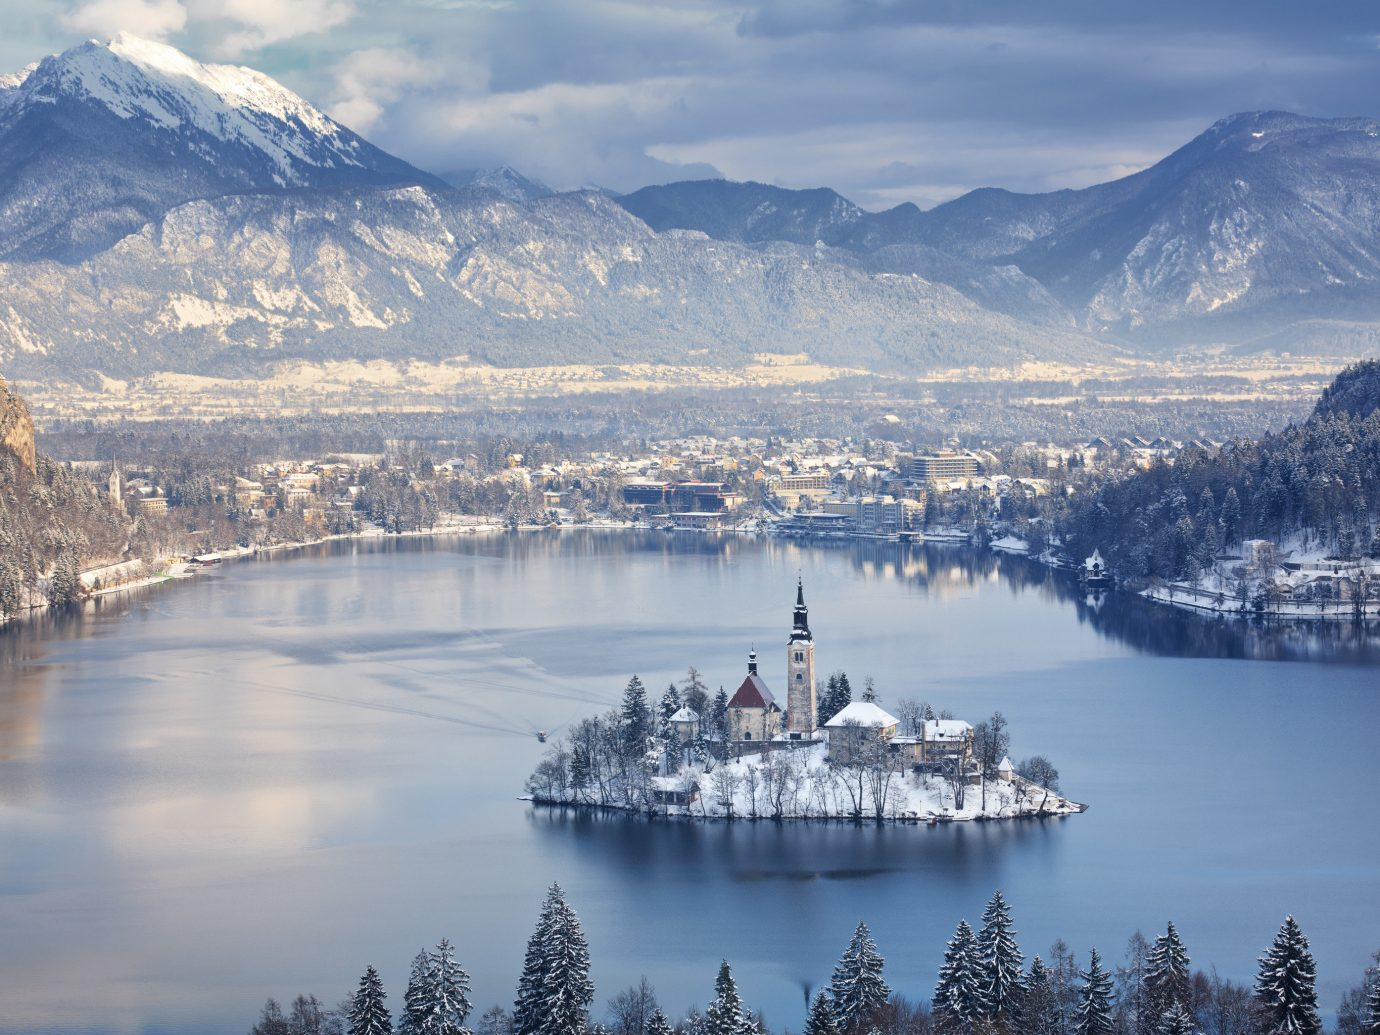 Mountains + Skiing Trip Ideas mountain sky outdoor water Nature reflection Winter mountainous landforms Lake mountain range cloud snow morning tree daytime freezing mount scenery City alps landscape River Sea tourist attraction glacial landform fell loch fjord arctic calm inlet